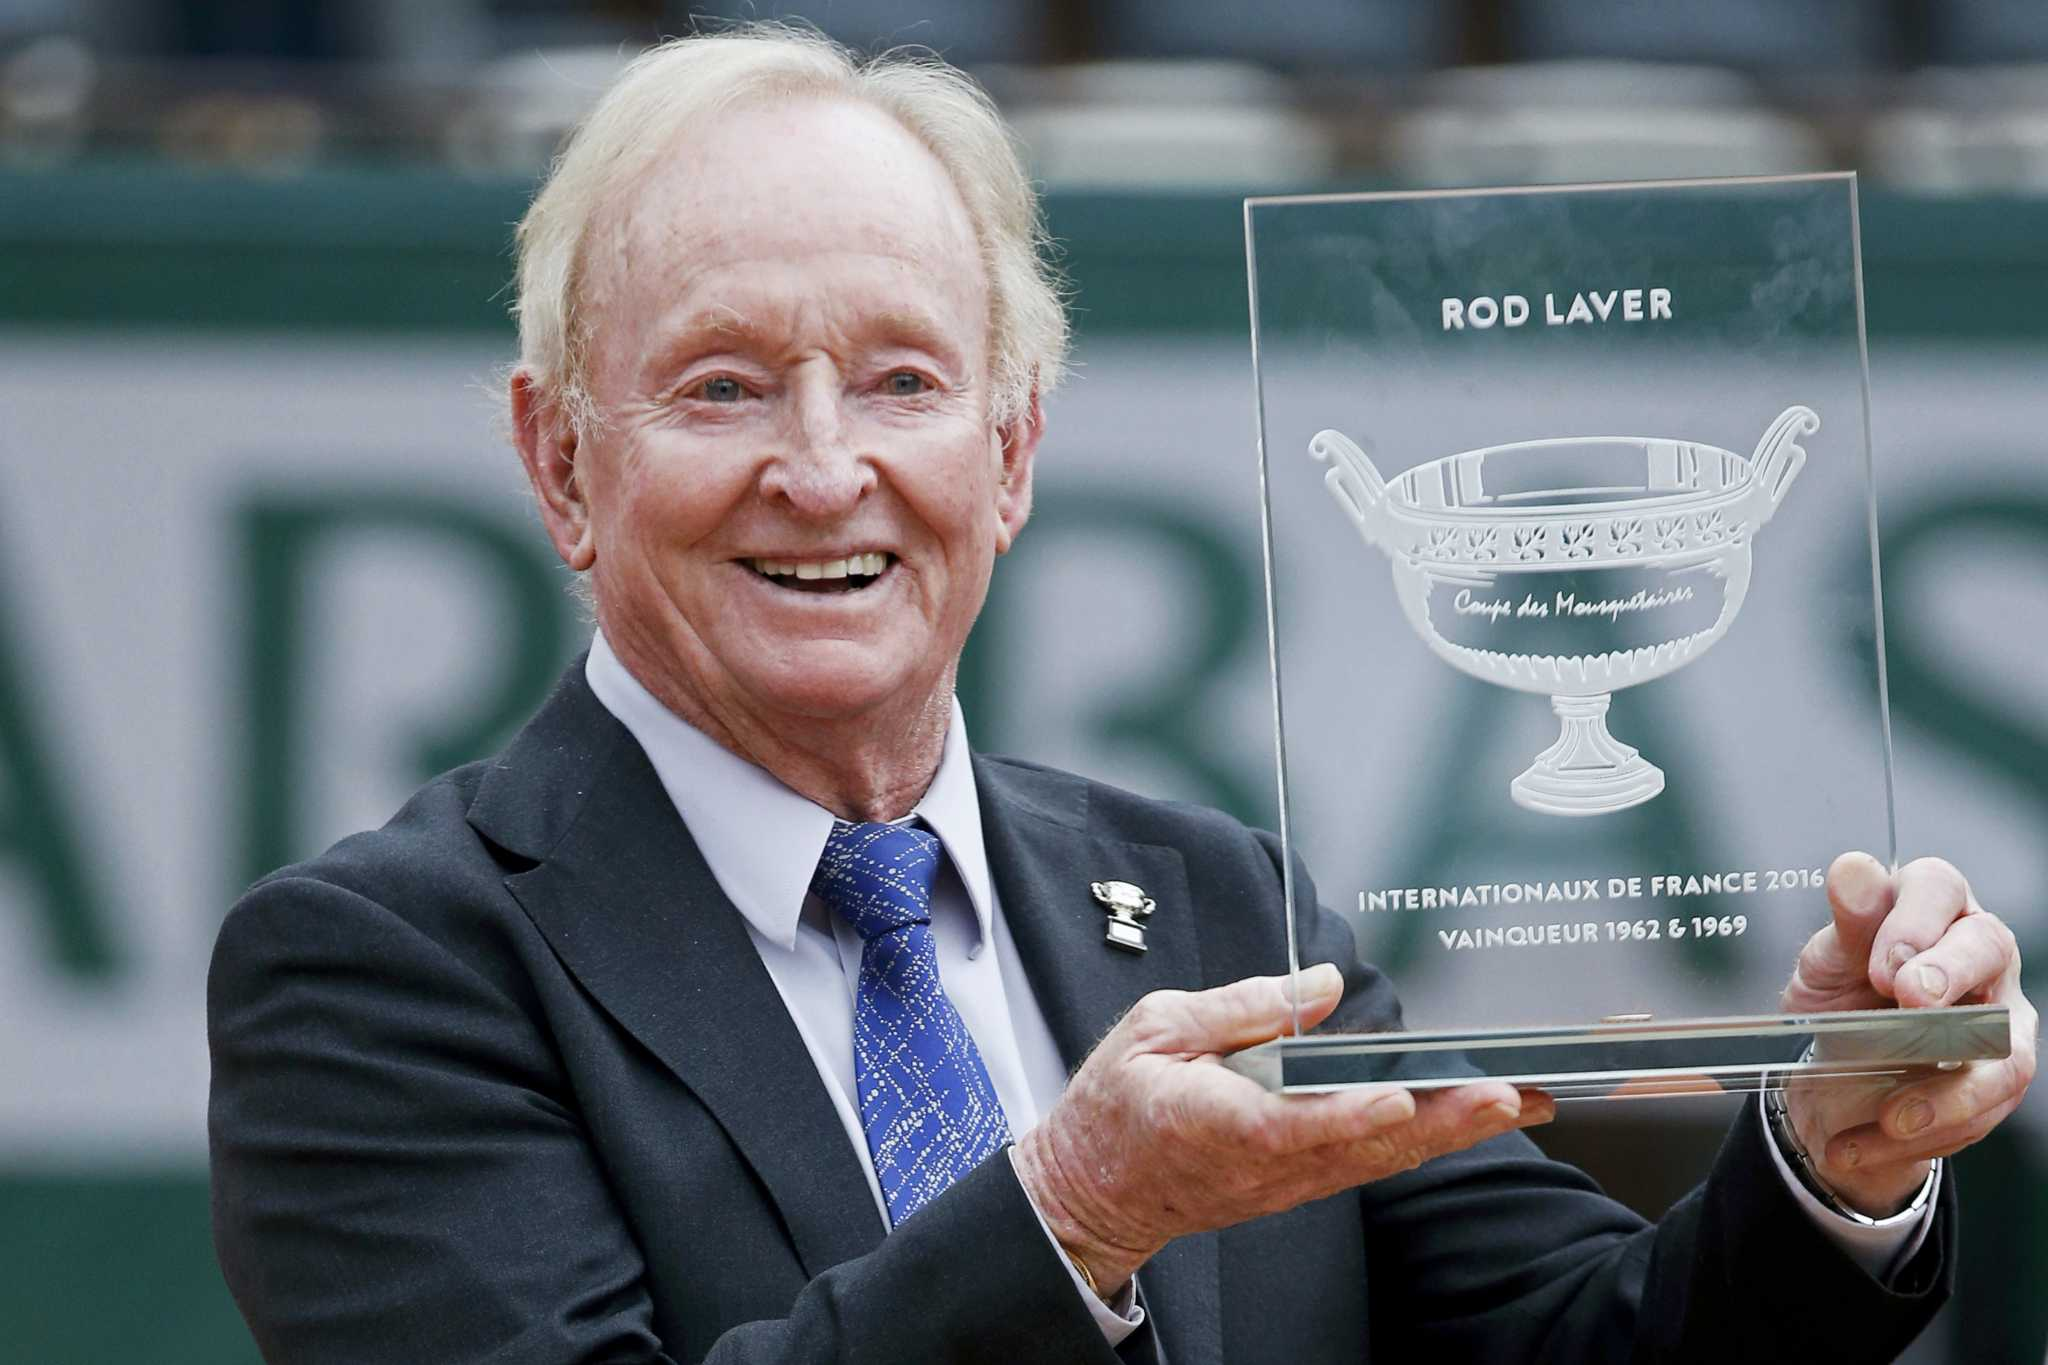 Rod Laver thought Novak Djokovic could be the guy to win Grand